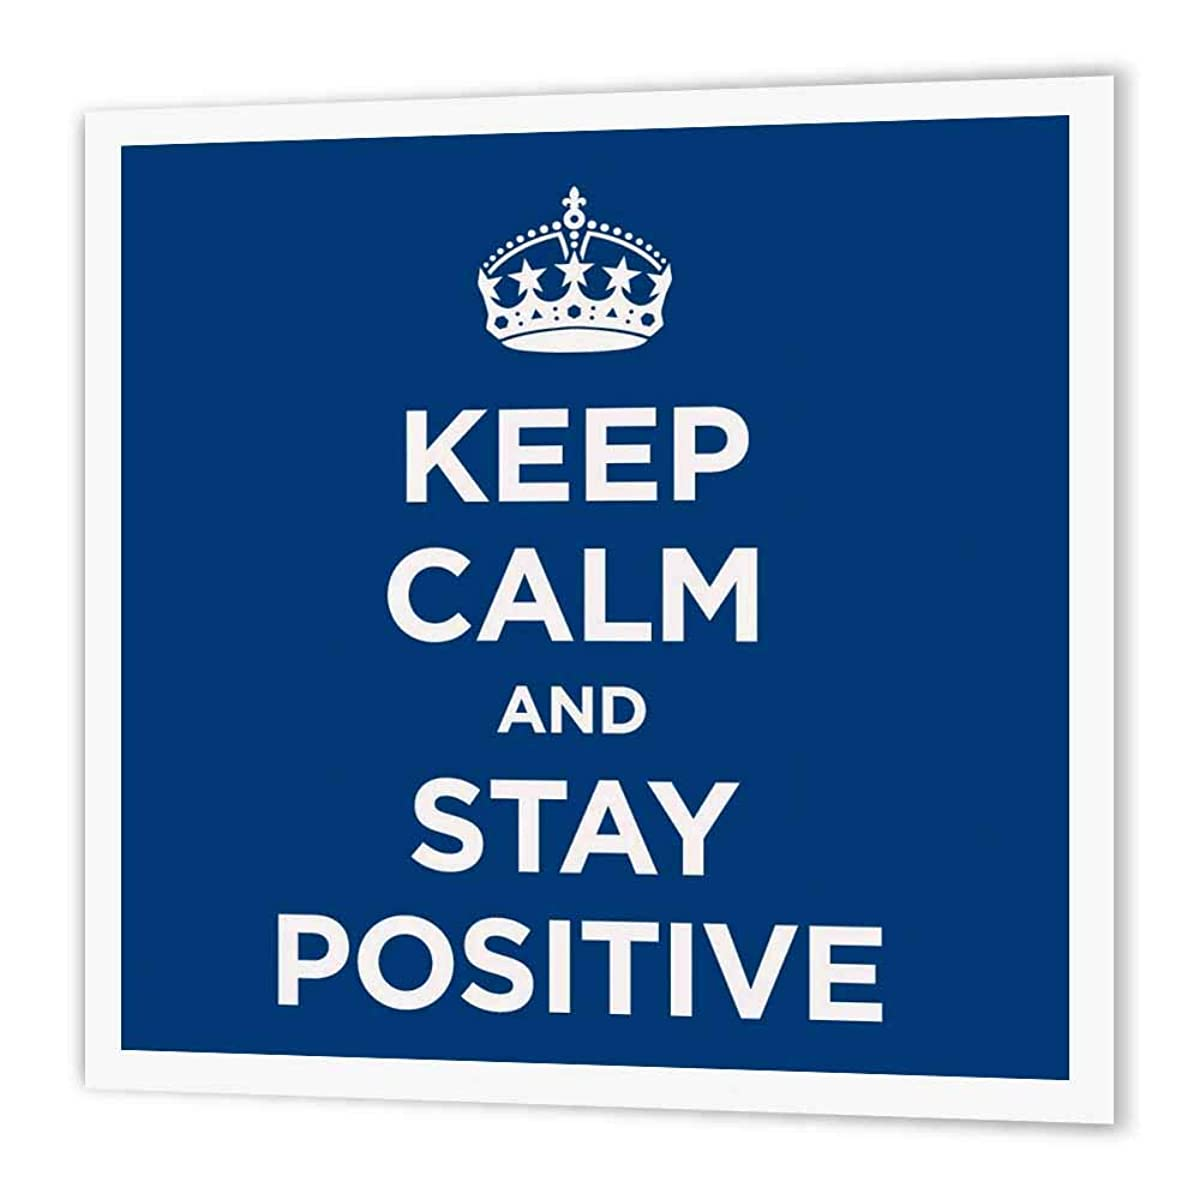 3dRose ht_194342_1 Keep Calm and Stay Positive. Navy-Iron on Heat Transfer Paper for White Material, 8 by 8-Inch